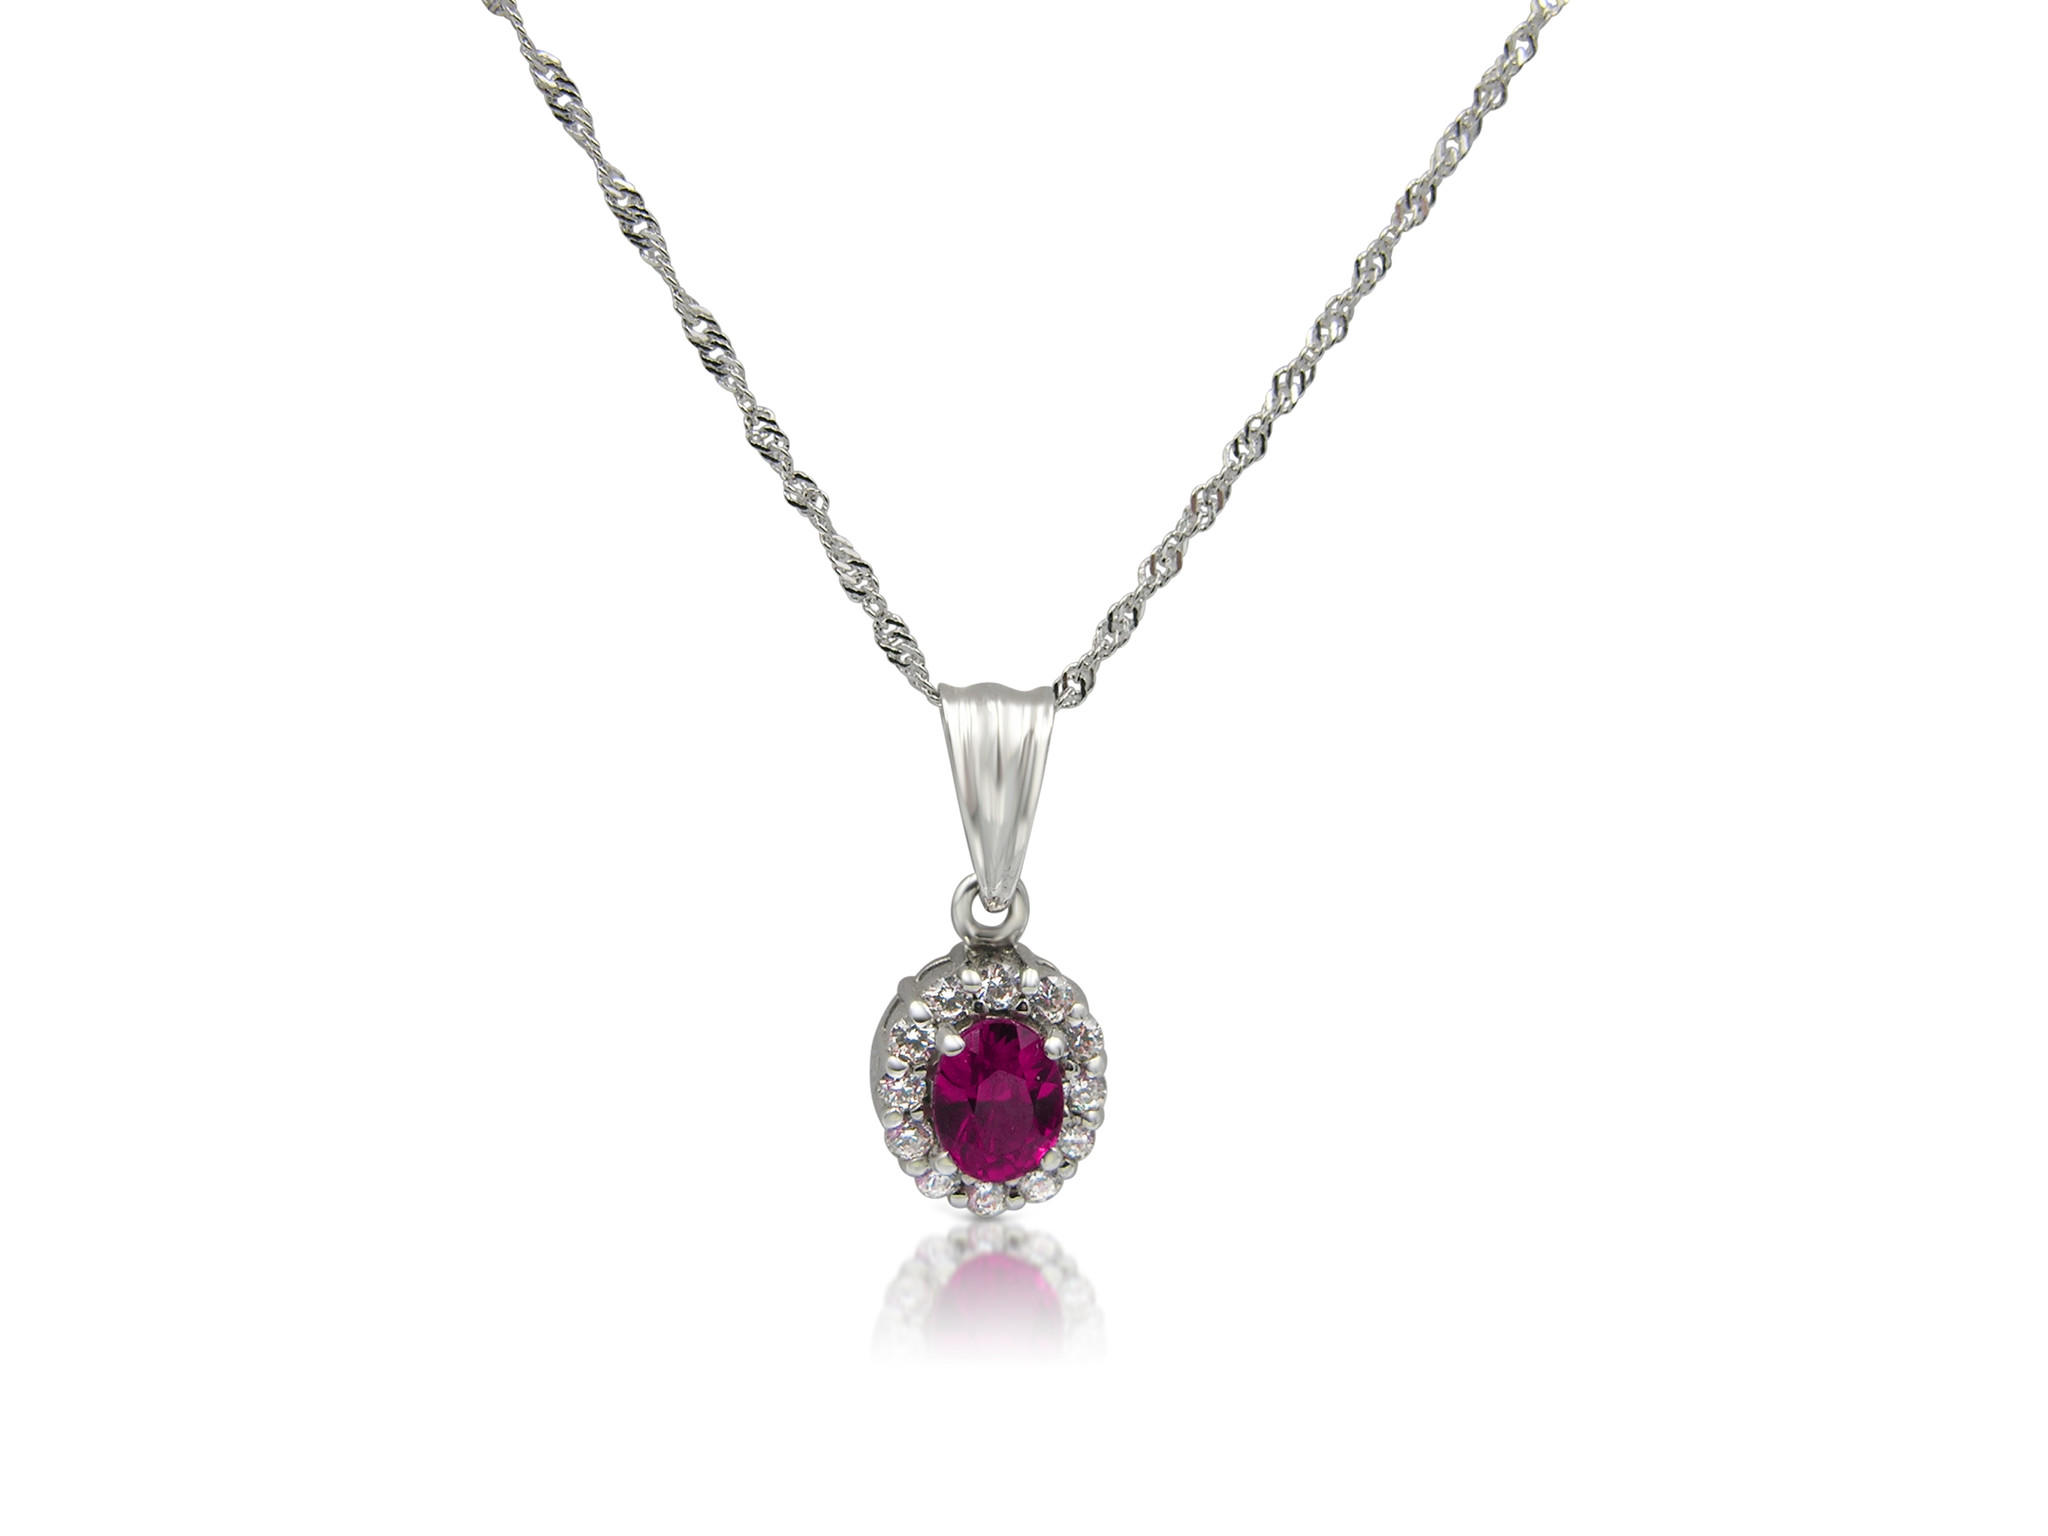 18 kt white gold pendant with red & white zirconia